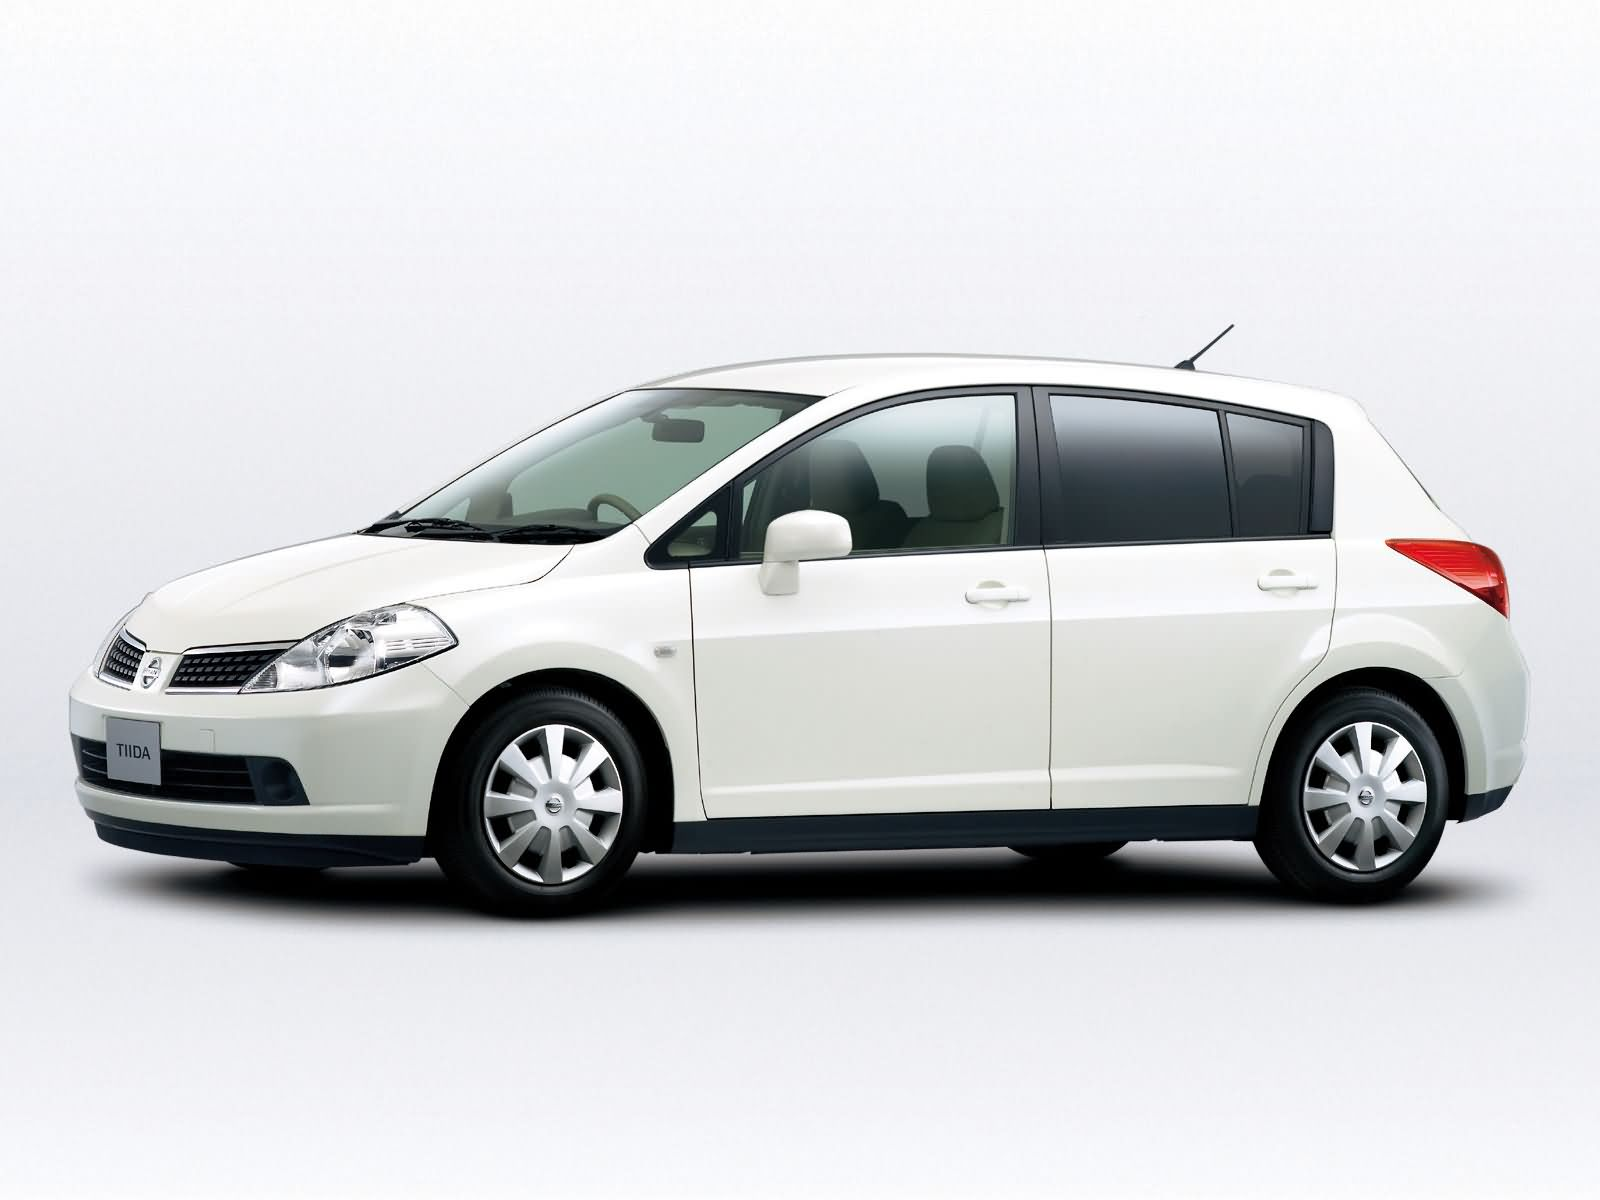 Nissan Tiida photo 15629